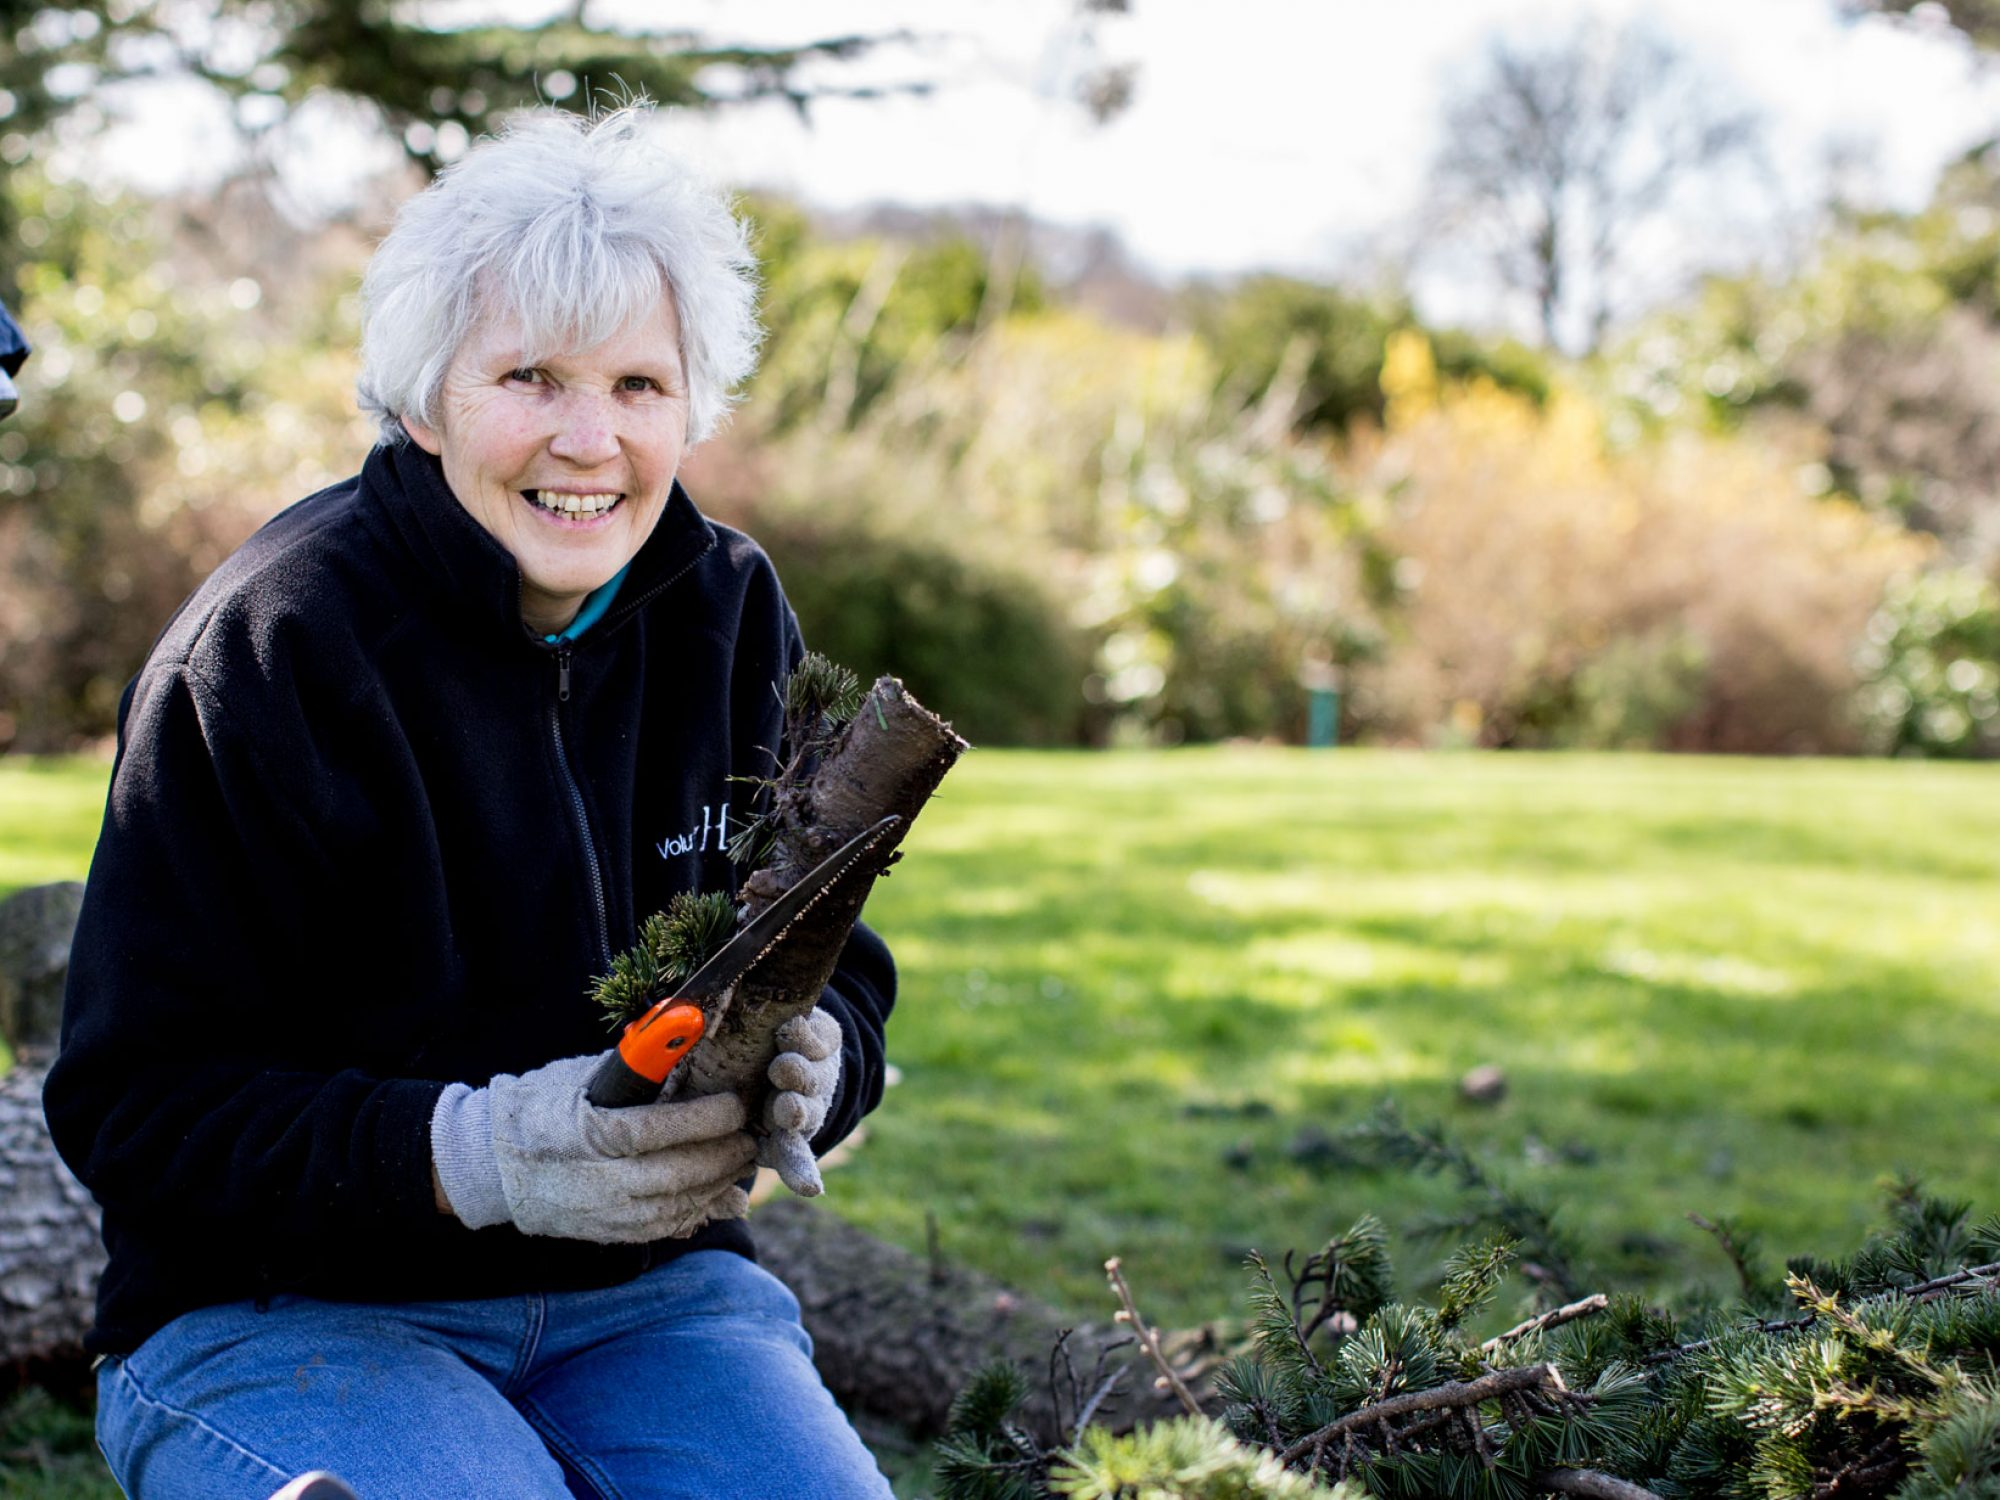 A volunteer woman in the Gardens, kneeling down and holding a log. Someone else is just seen bending over next to her. She is smiling at the camera